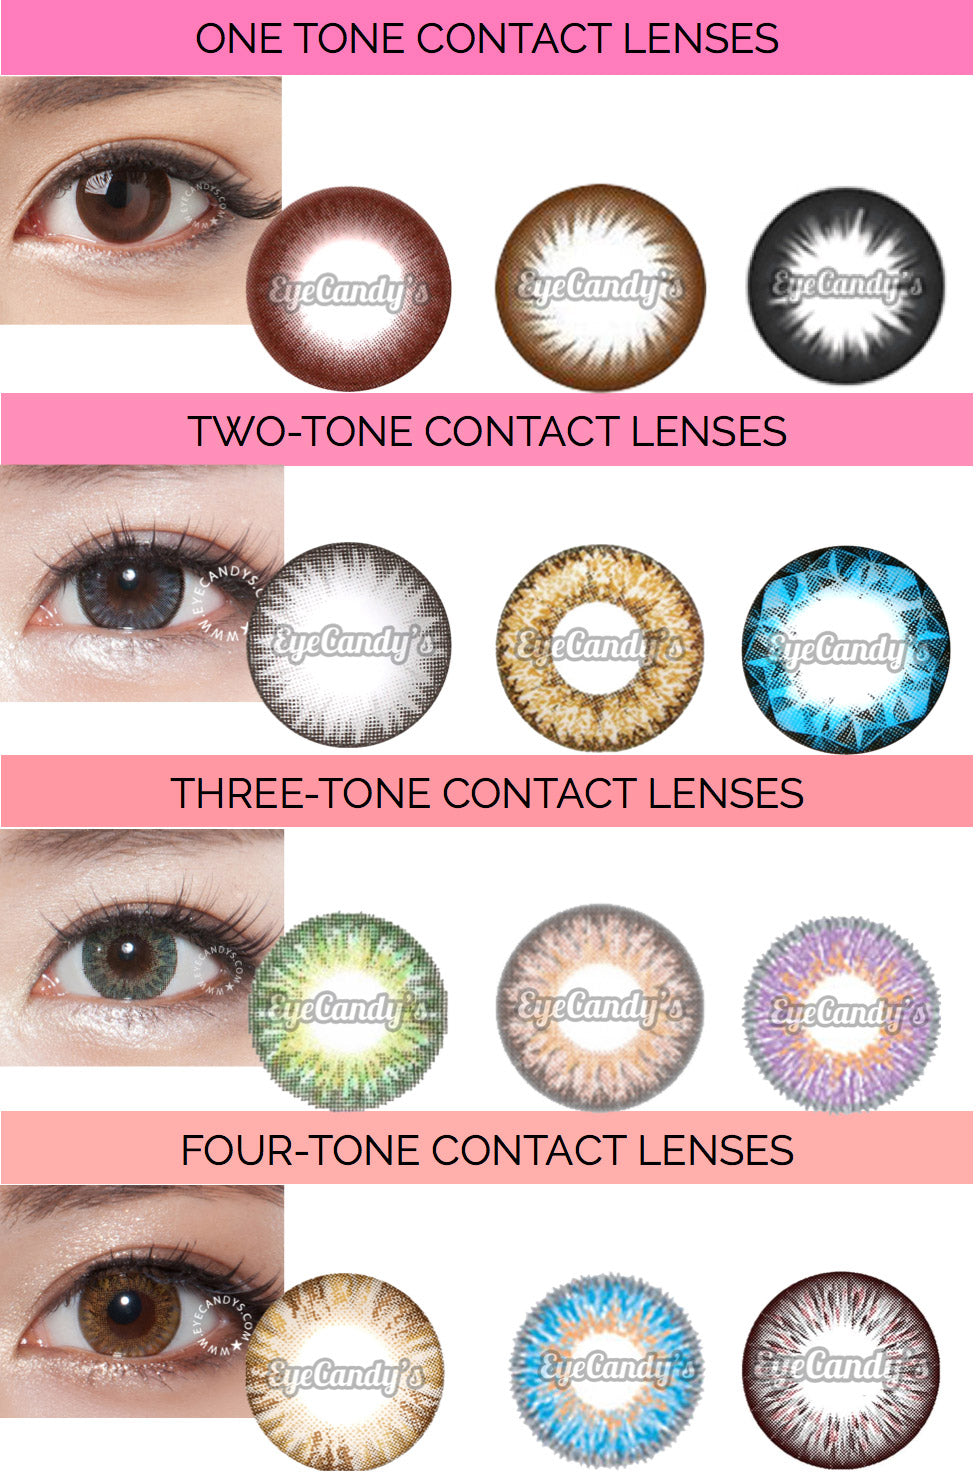 1, 2, 3 or 4 tones? How many should I have in my color contacts?